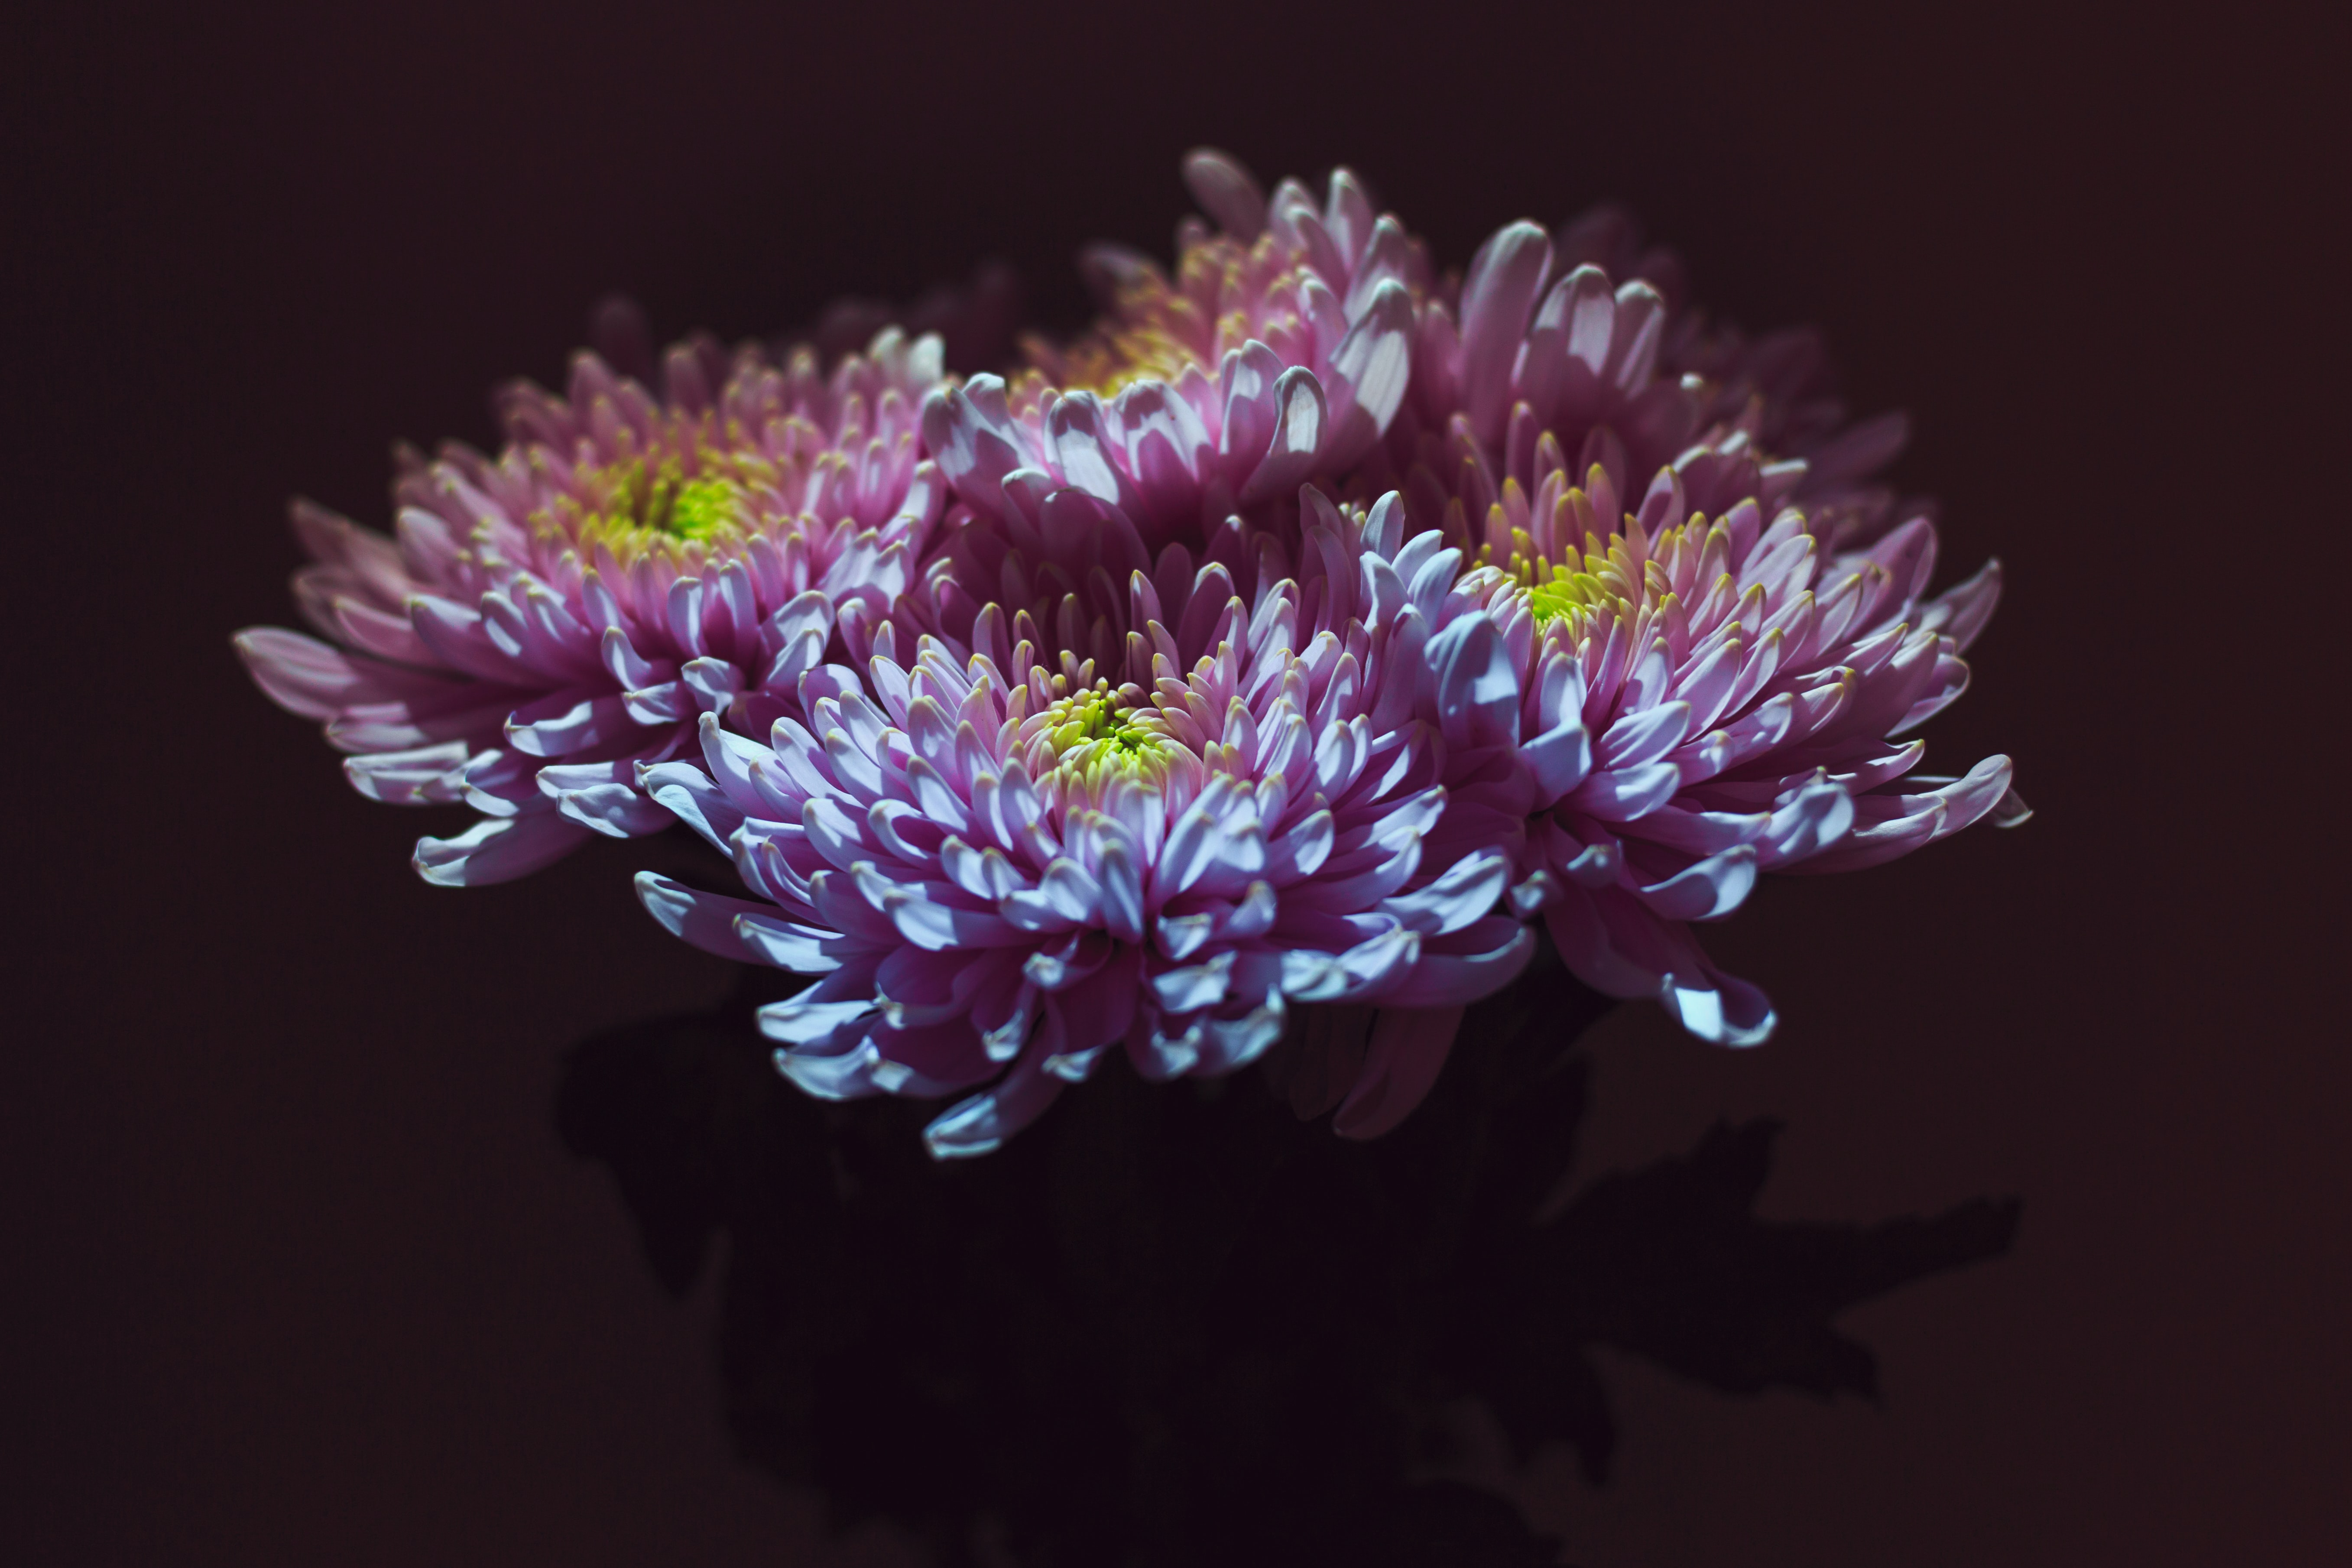 focus photo of purple and yellow petaled flower